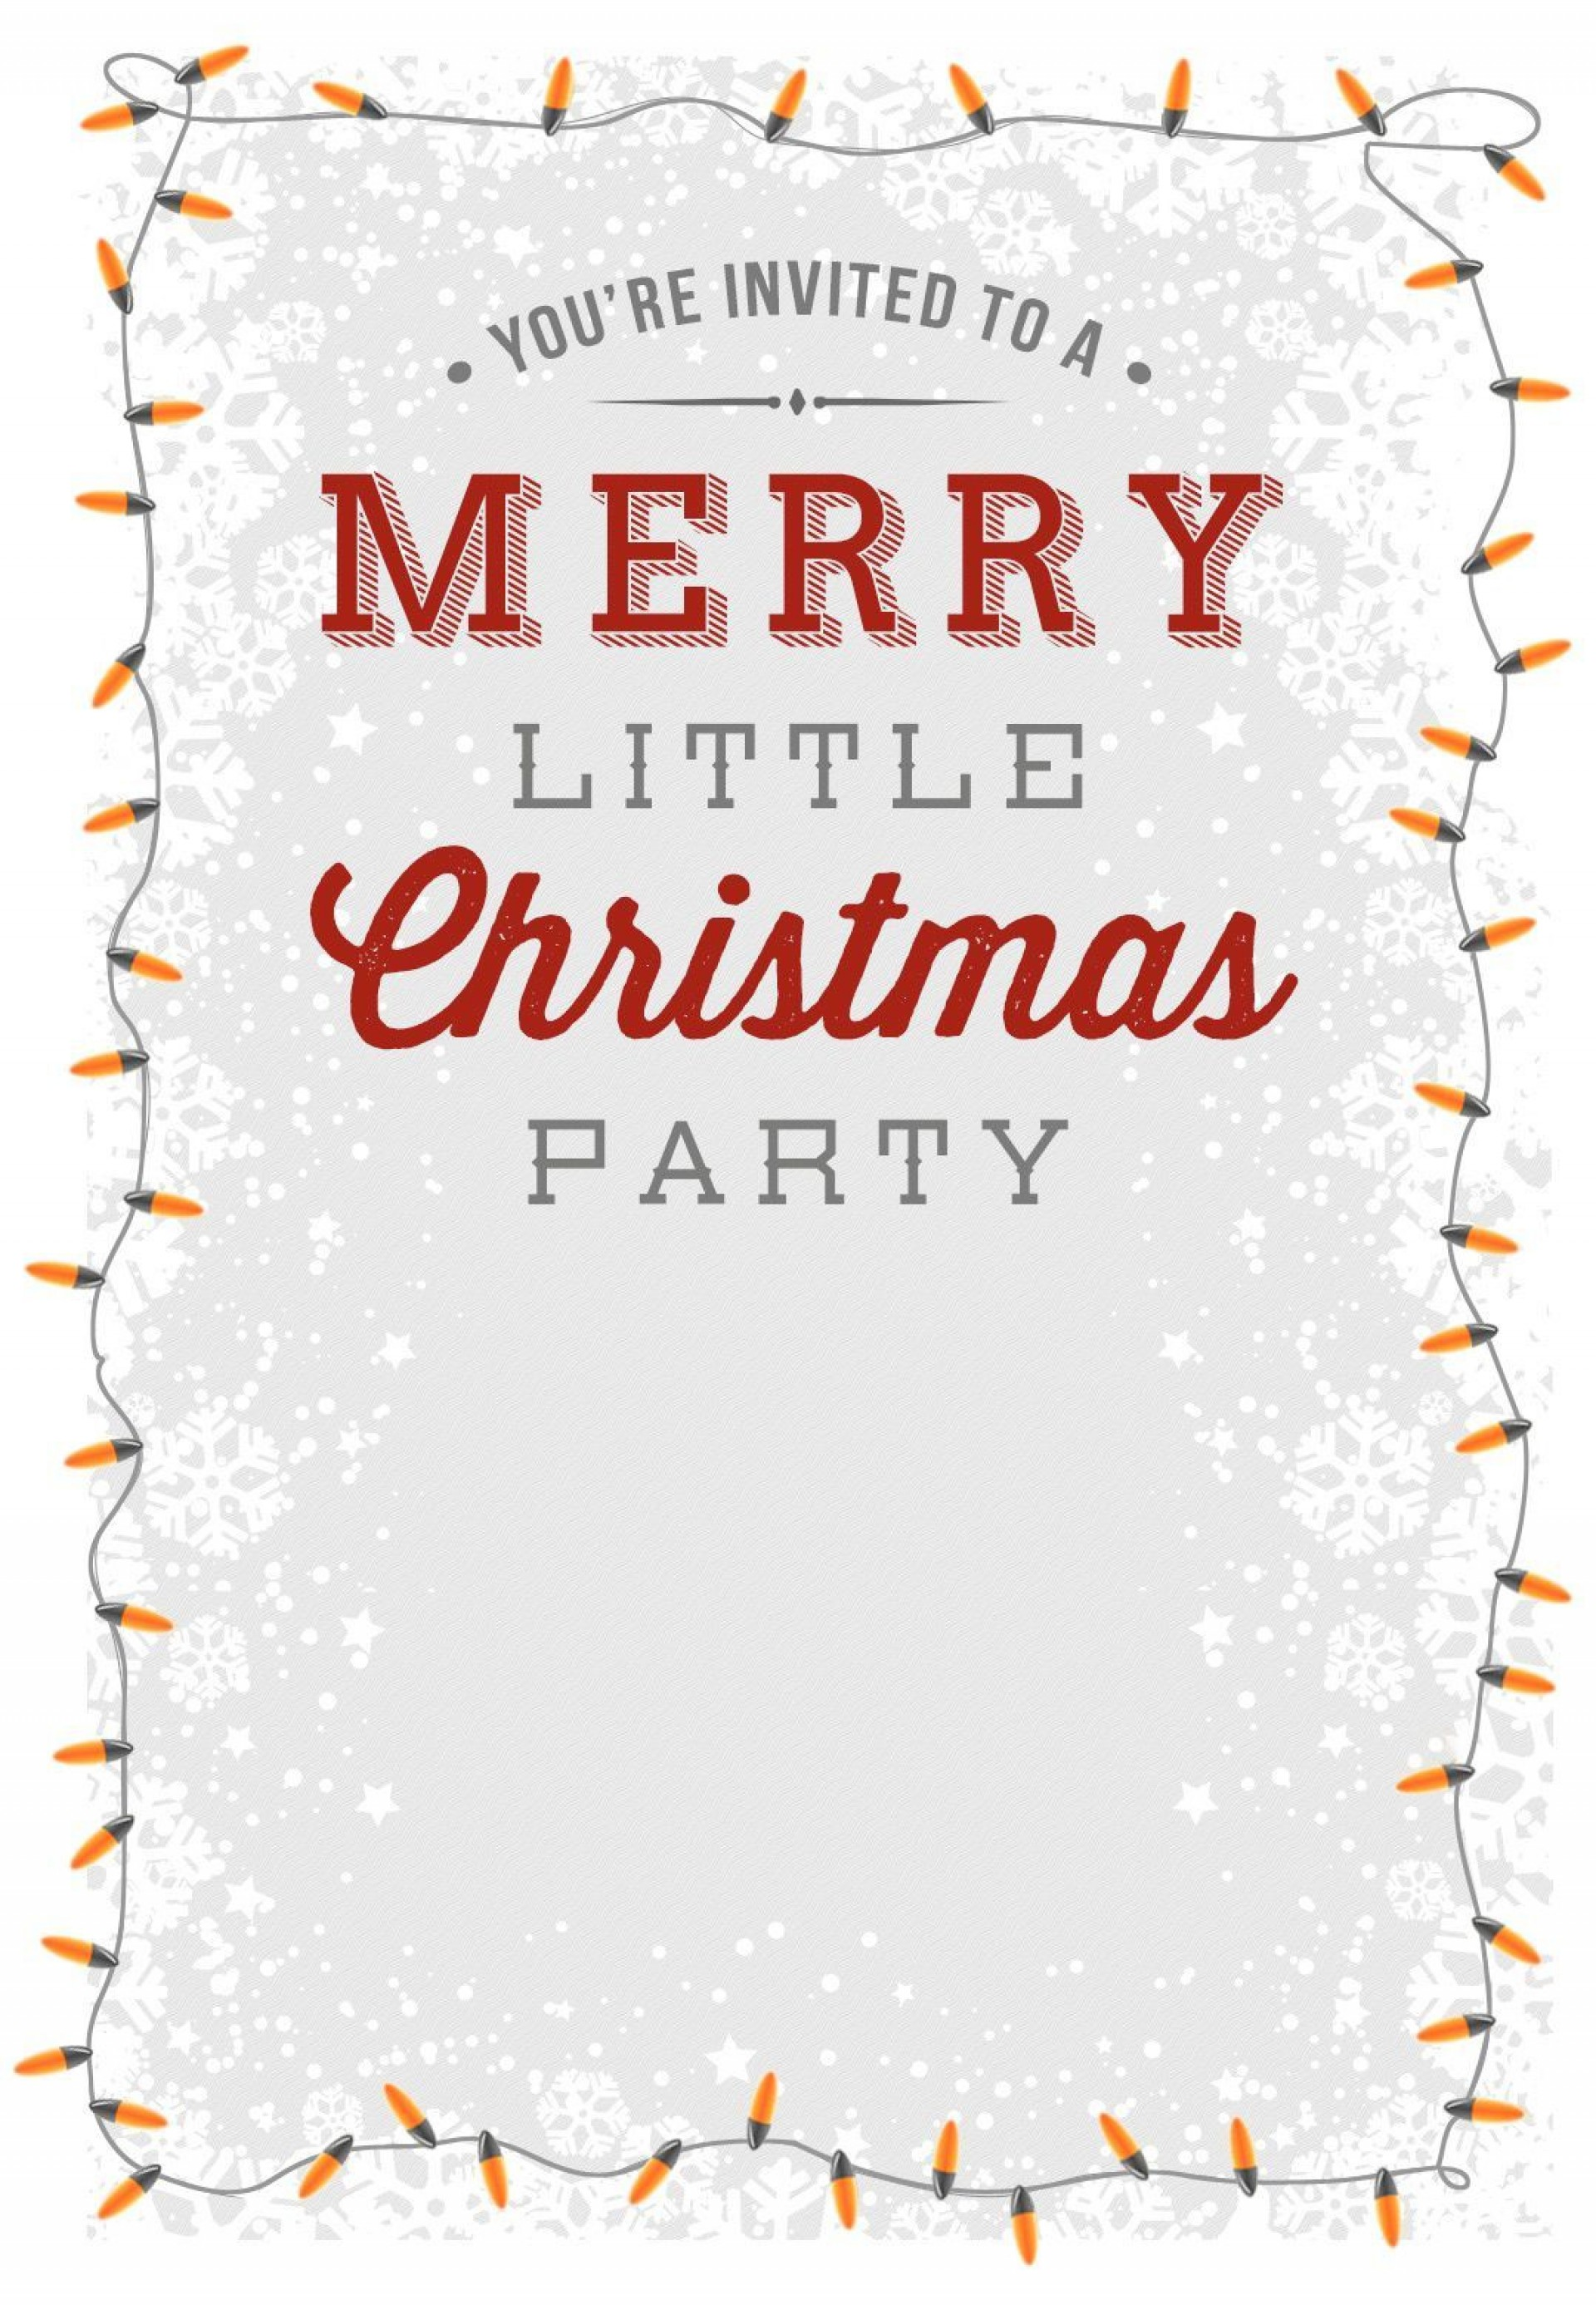 006 Awful Christma Party Invite Template Free Download Photo  Funny Invitation Holiday1920